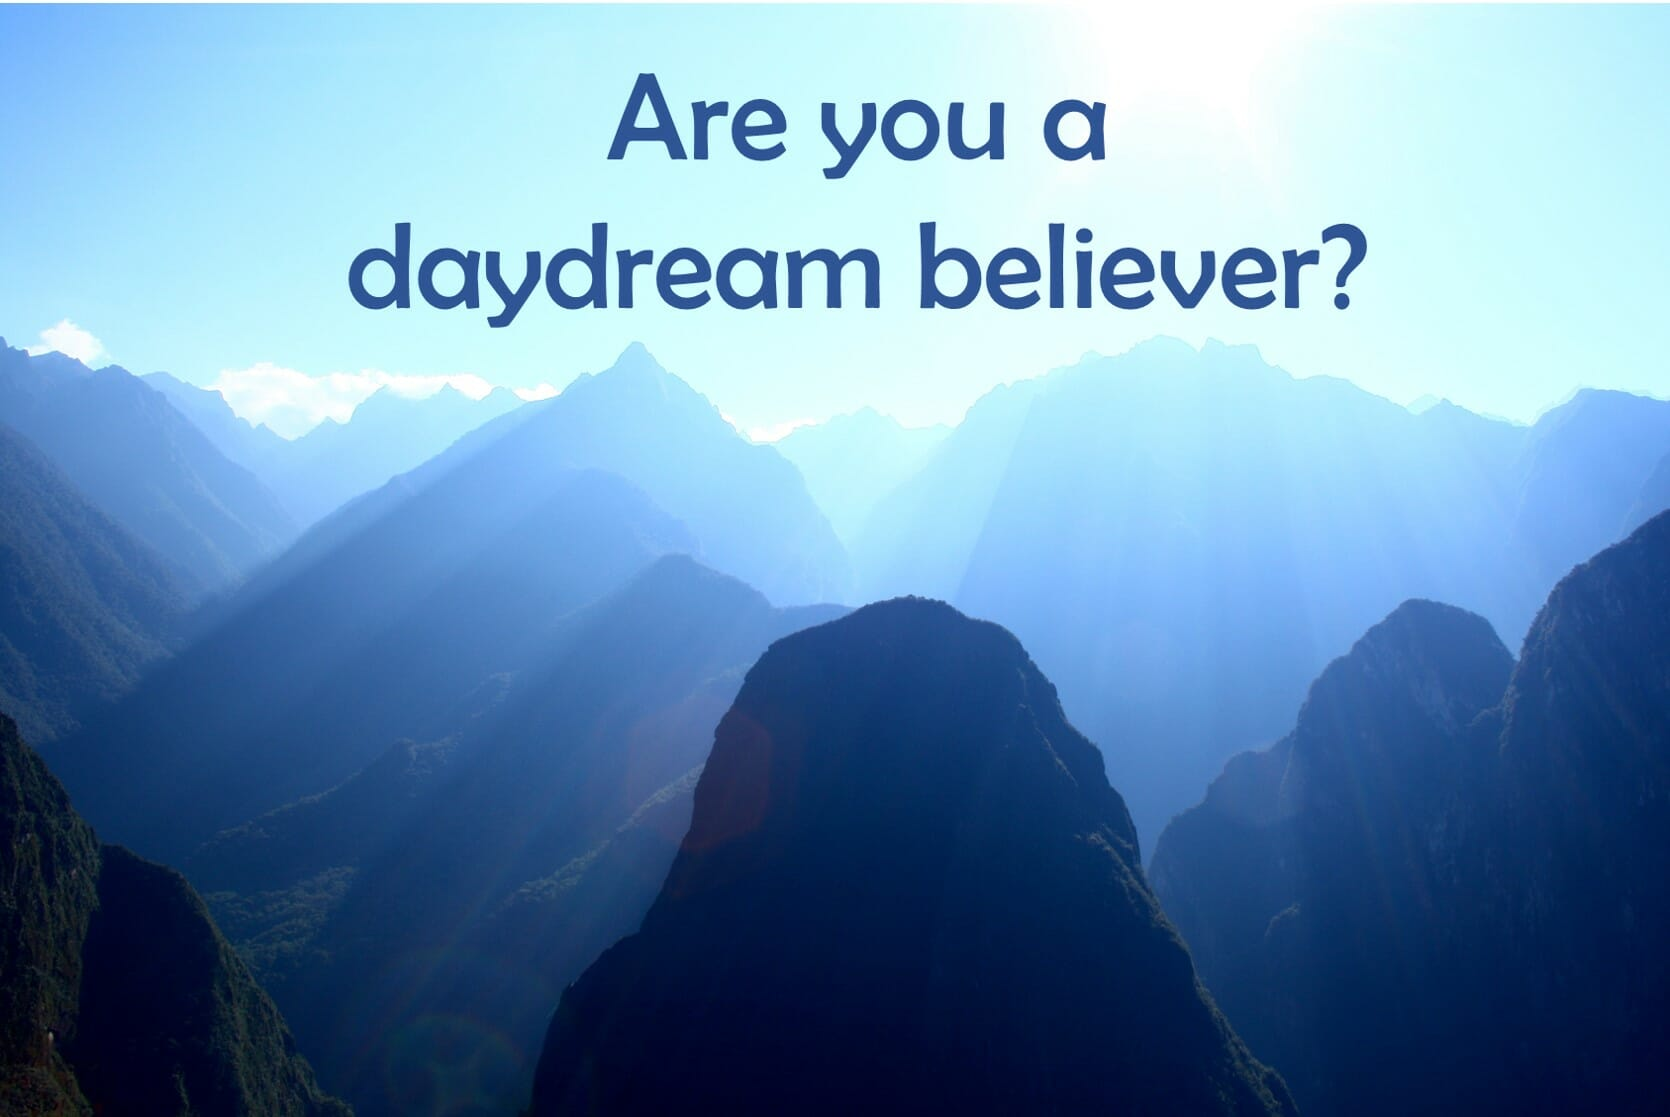 ARE YOU A DAYDREAM BELIEVER?